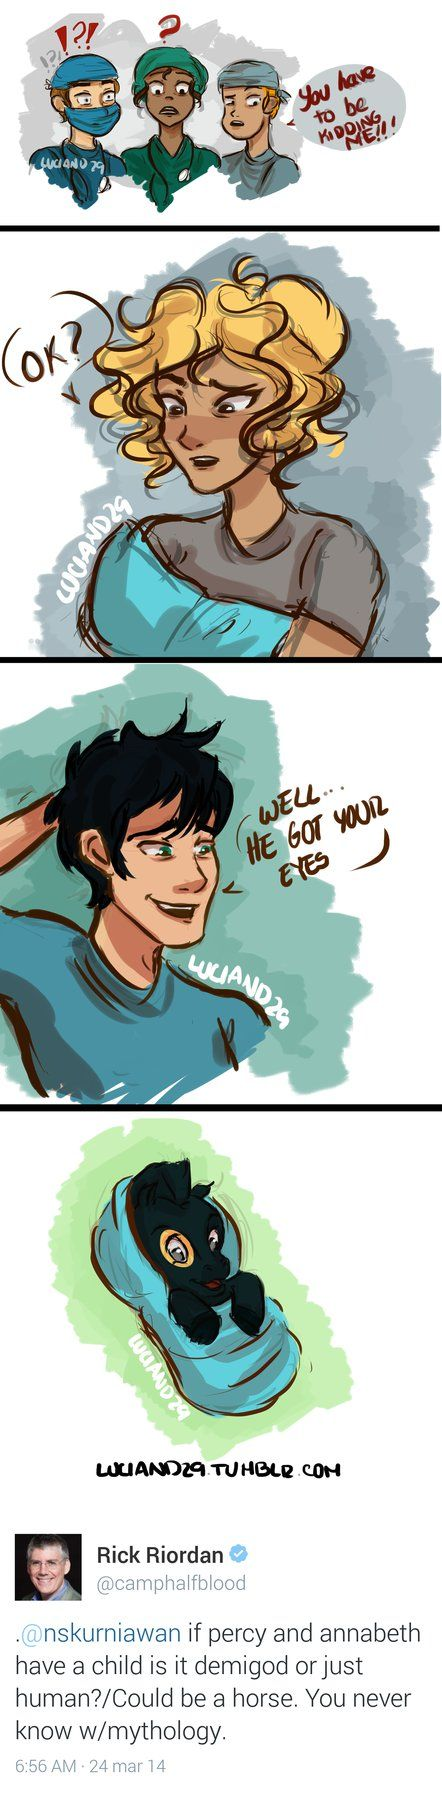 If Percy and Annabeth have a child...? by Luciand29<----I blame Percy's side of the family